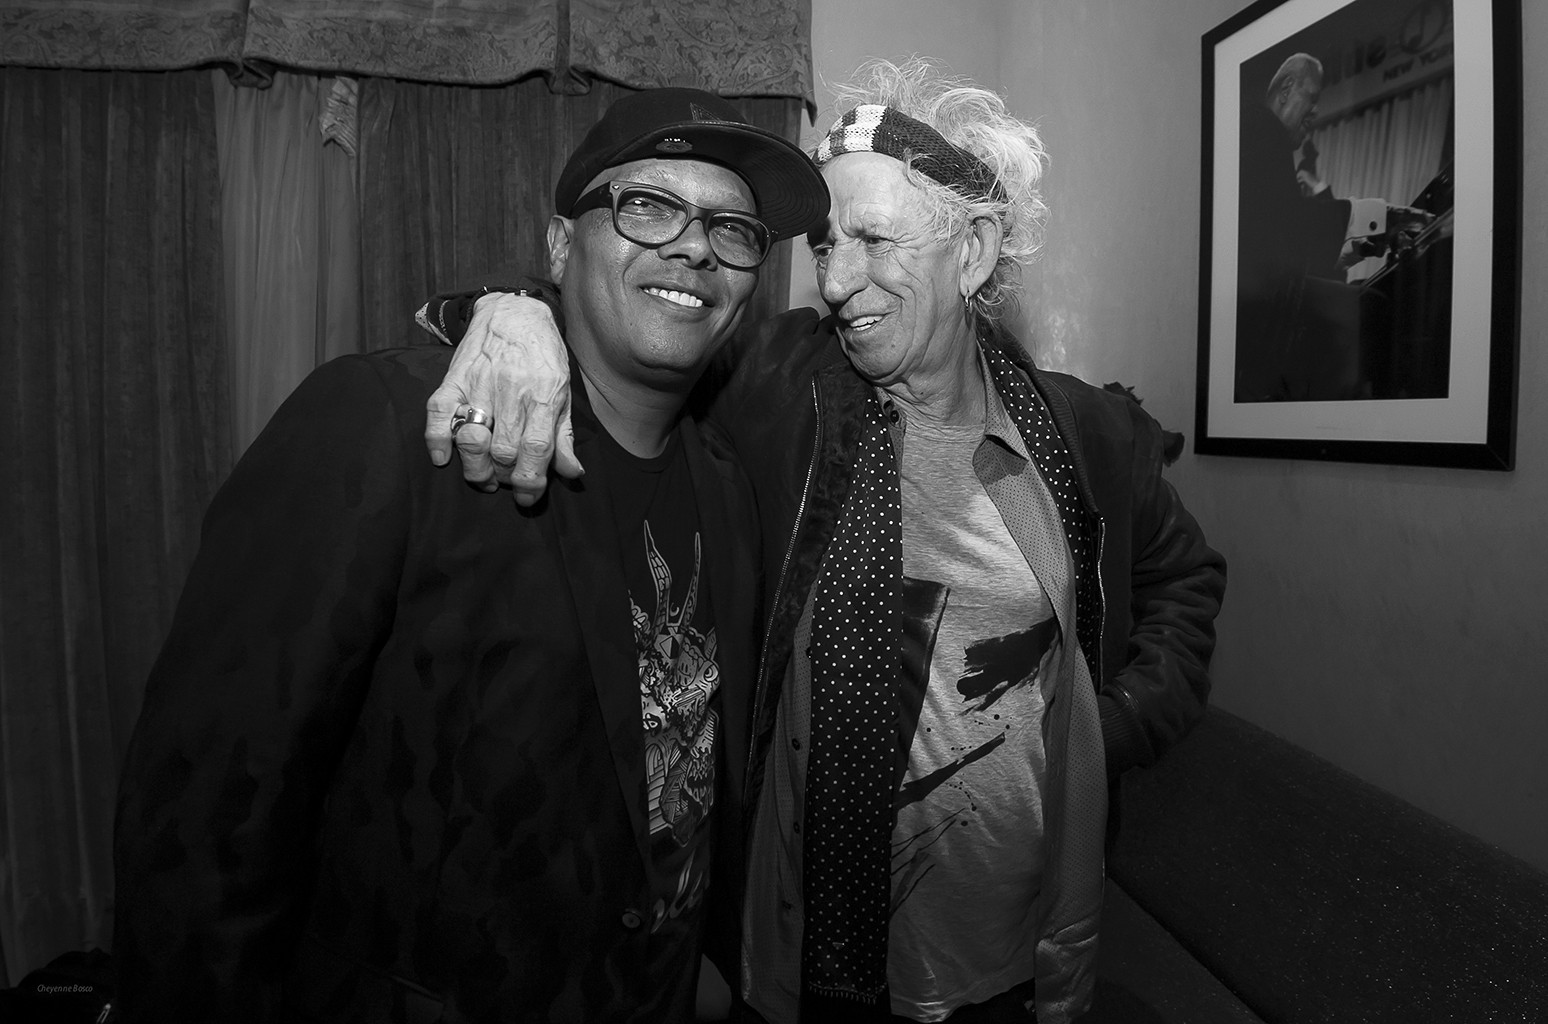 Ivan Neville and Keith Richards